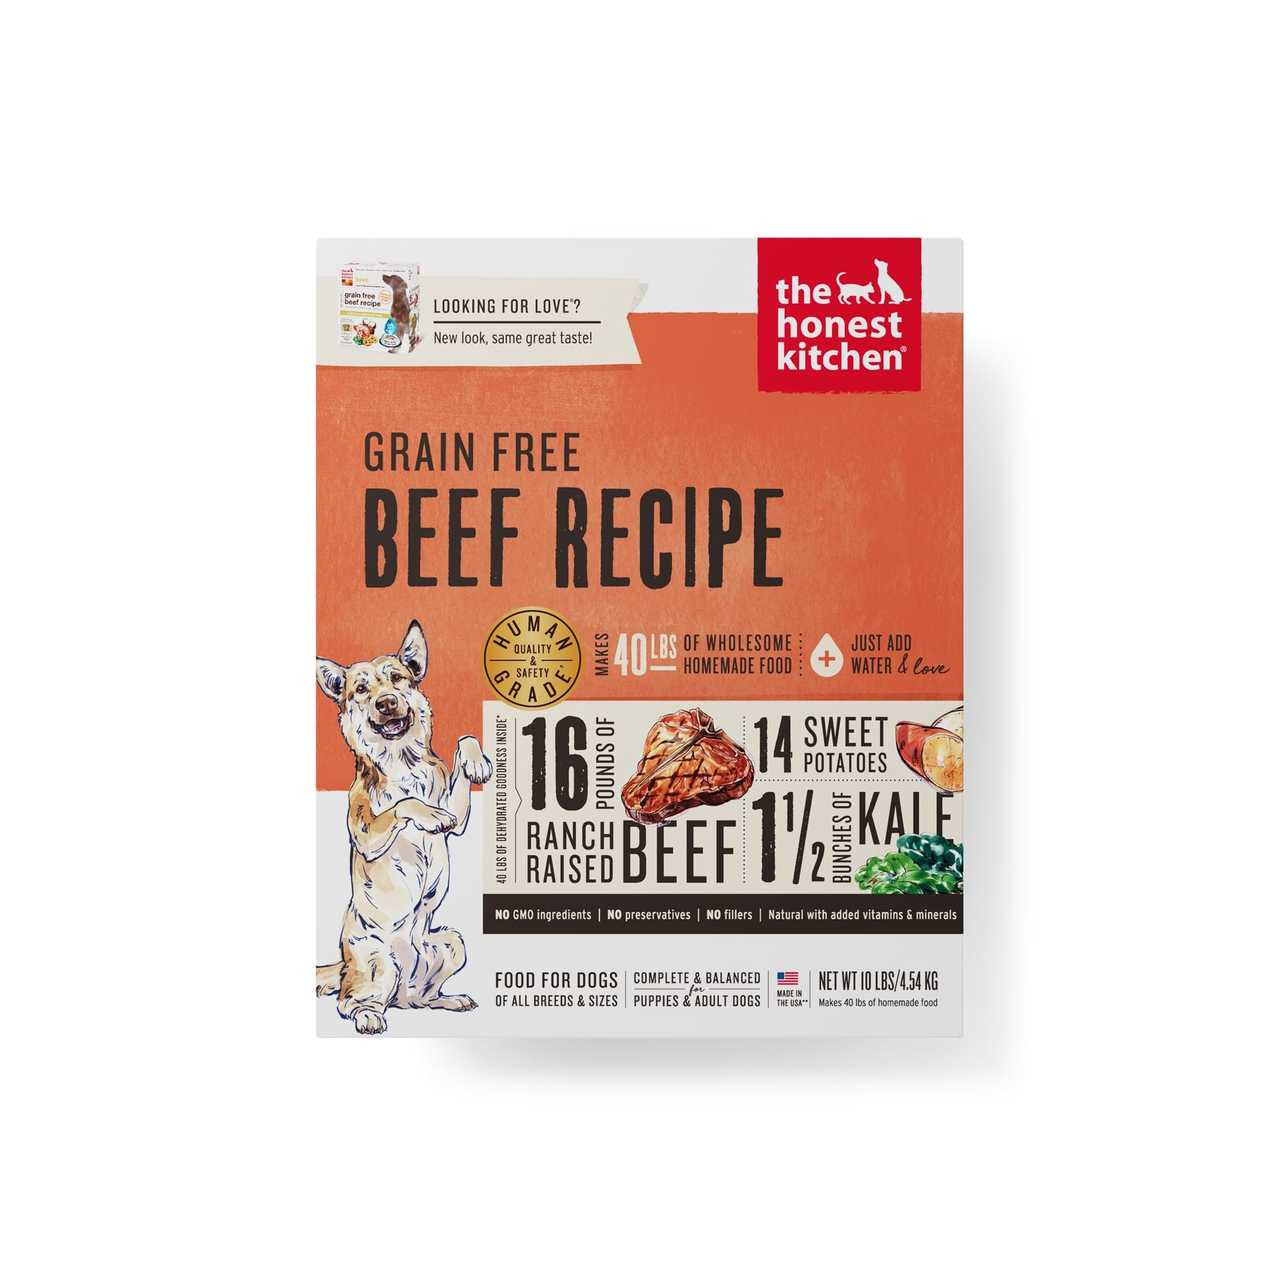 The Honest Kitchen Grain-Free Beef Recipe (LOVE) Dehydrated Dog Food